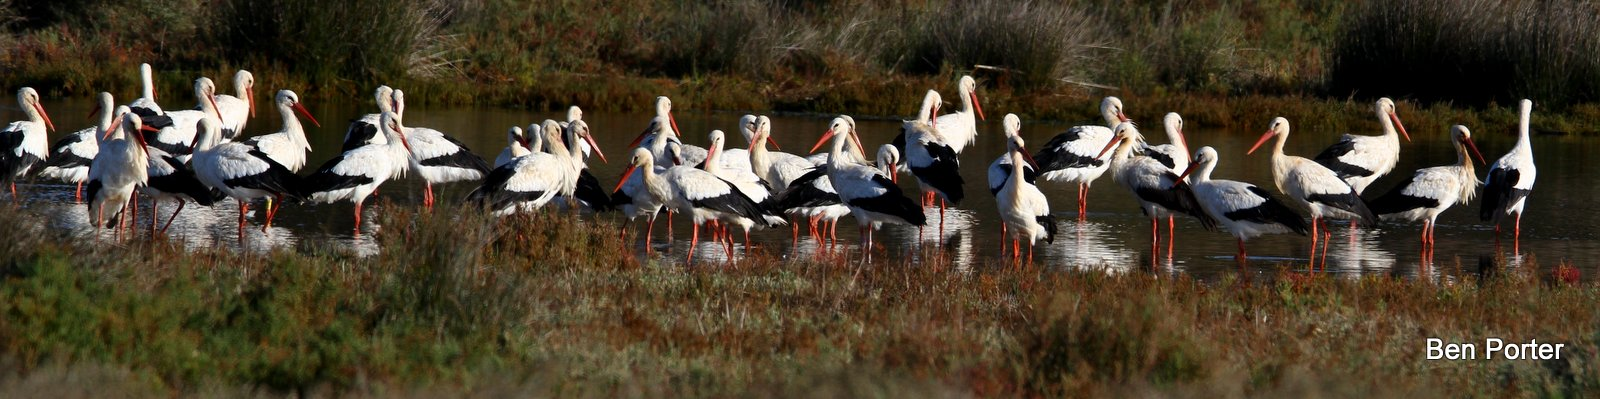 a group of storks